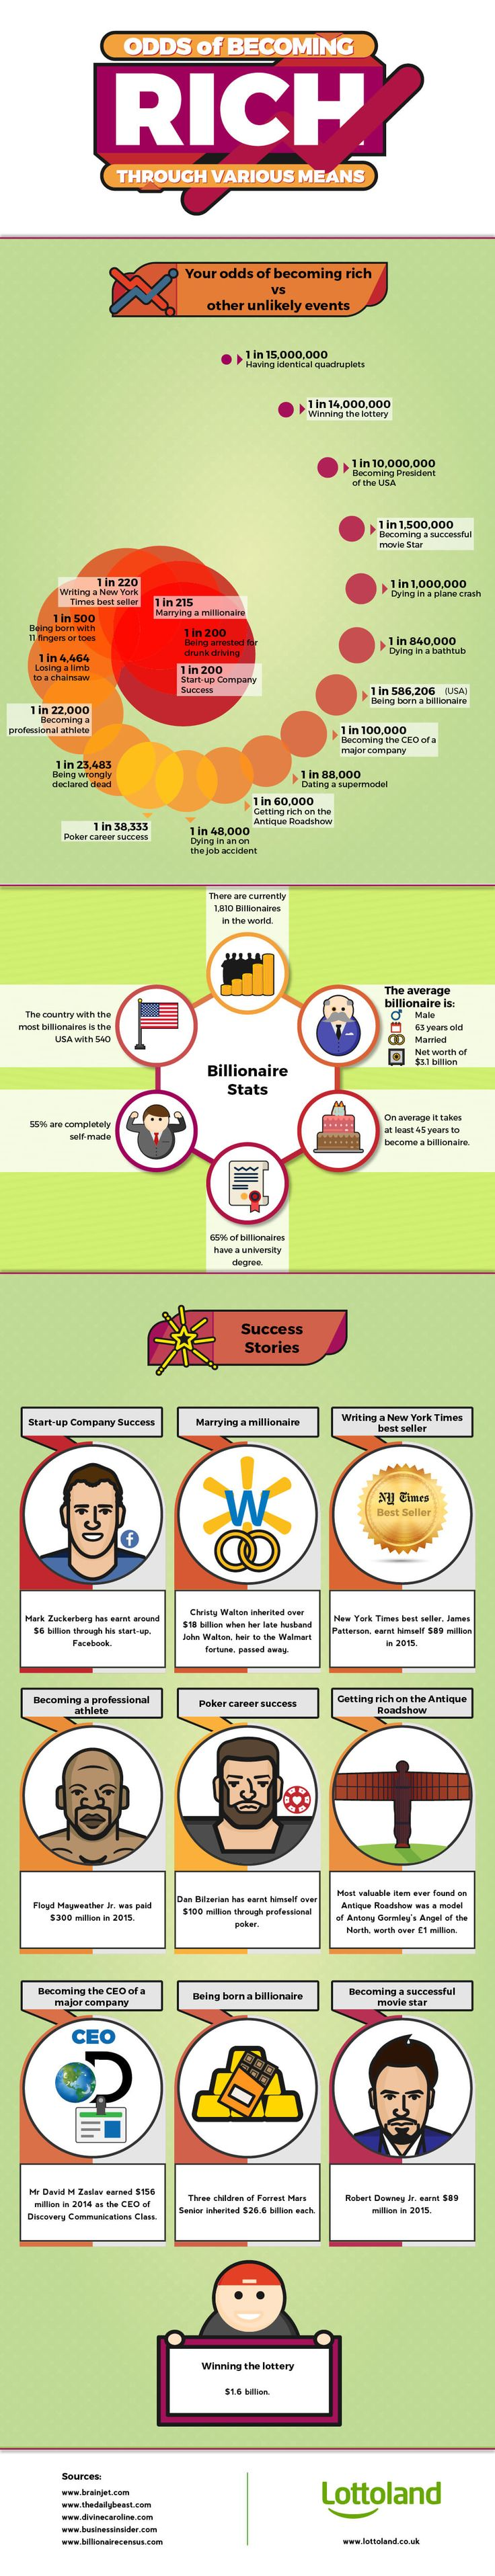 72 best money wealth images on pinterest finance wealth and the odds of getting rich through various means infographic nvjuhfo Images